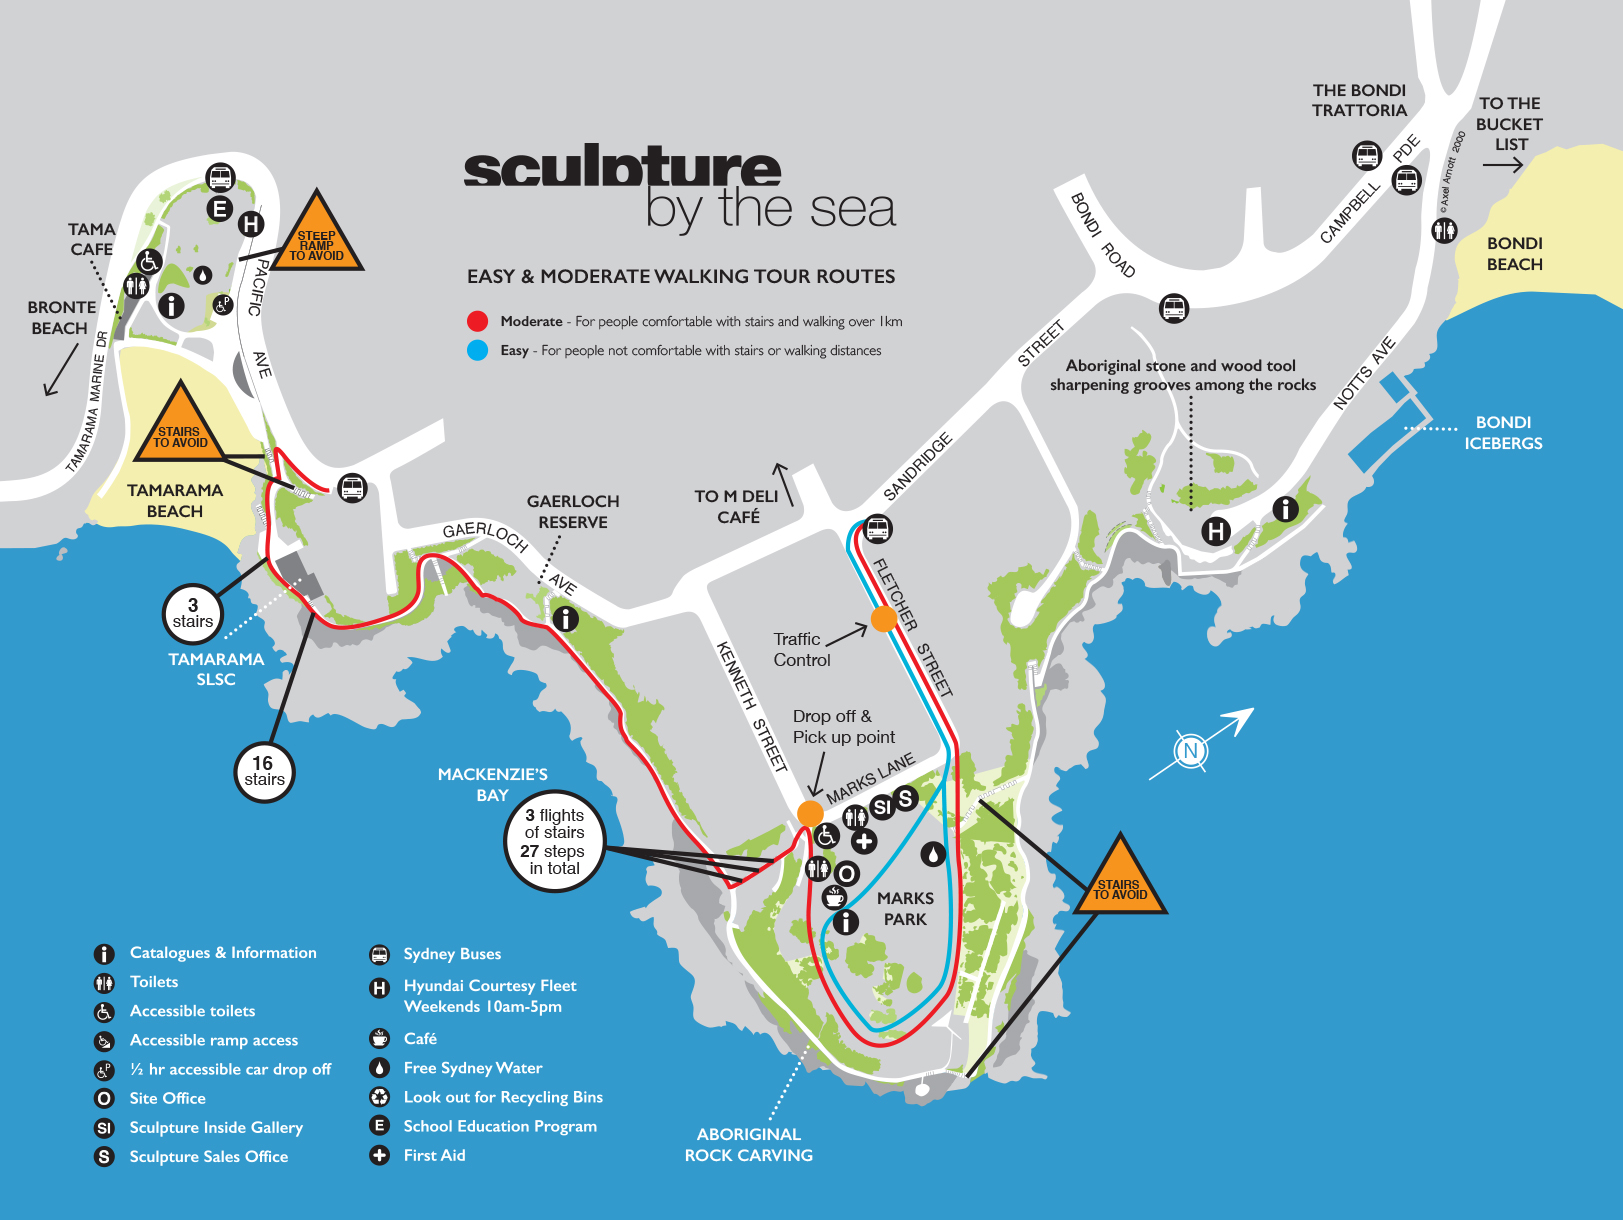 Final-Catalogue-Map-Bondi-2017-walking-tour.jpg